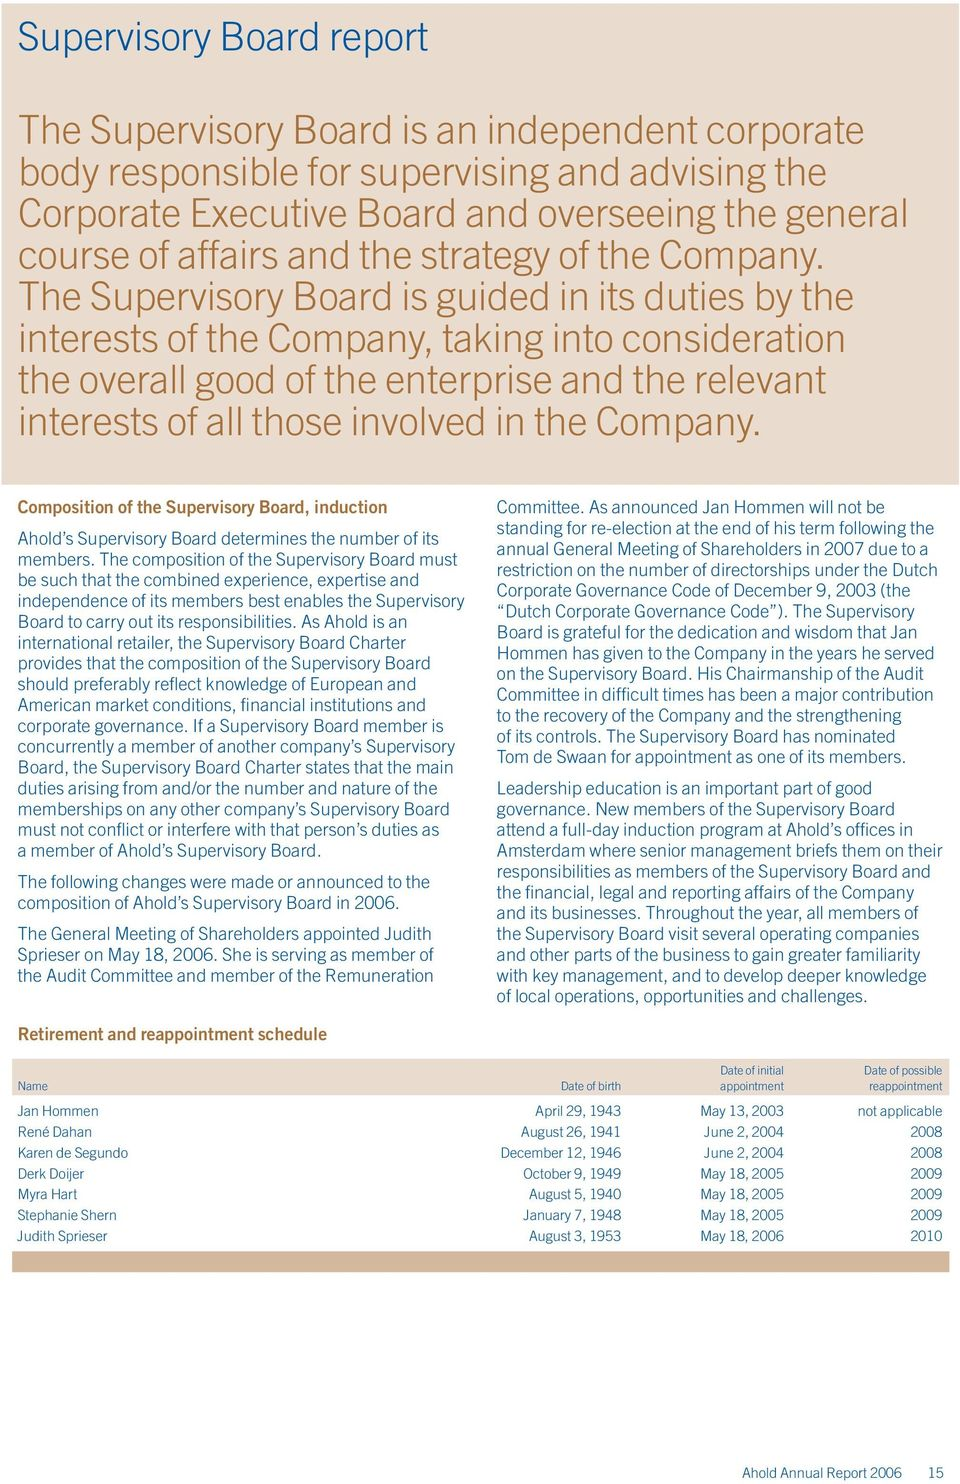 The Supervisory Board is guided in its duties by the interests of the Company, taking into consideration the overall good of the enterprise and the relevant interests of all those involved in the